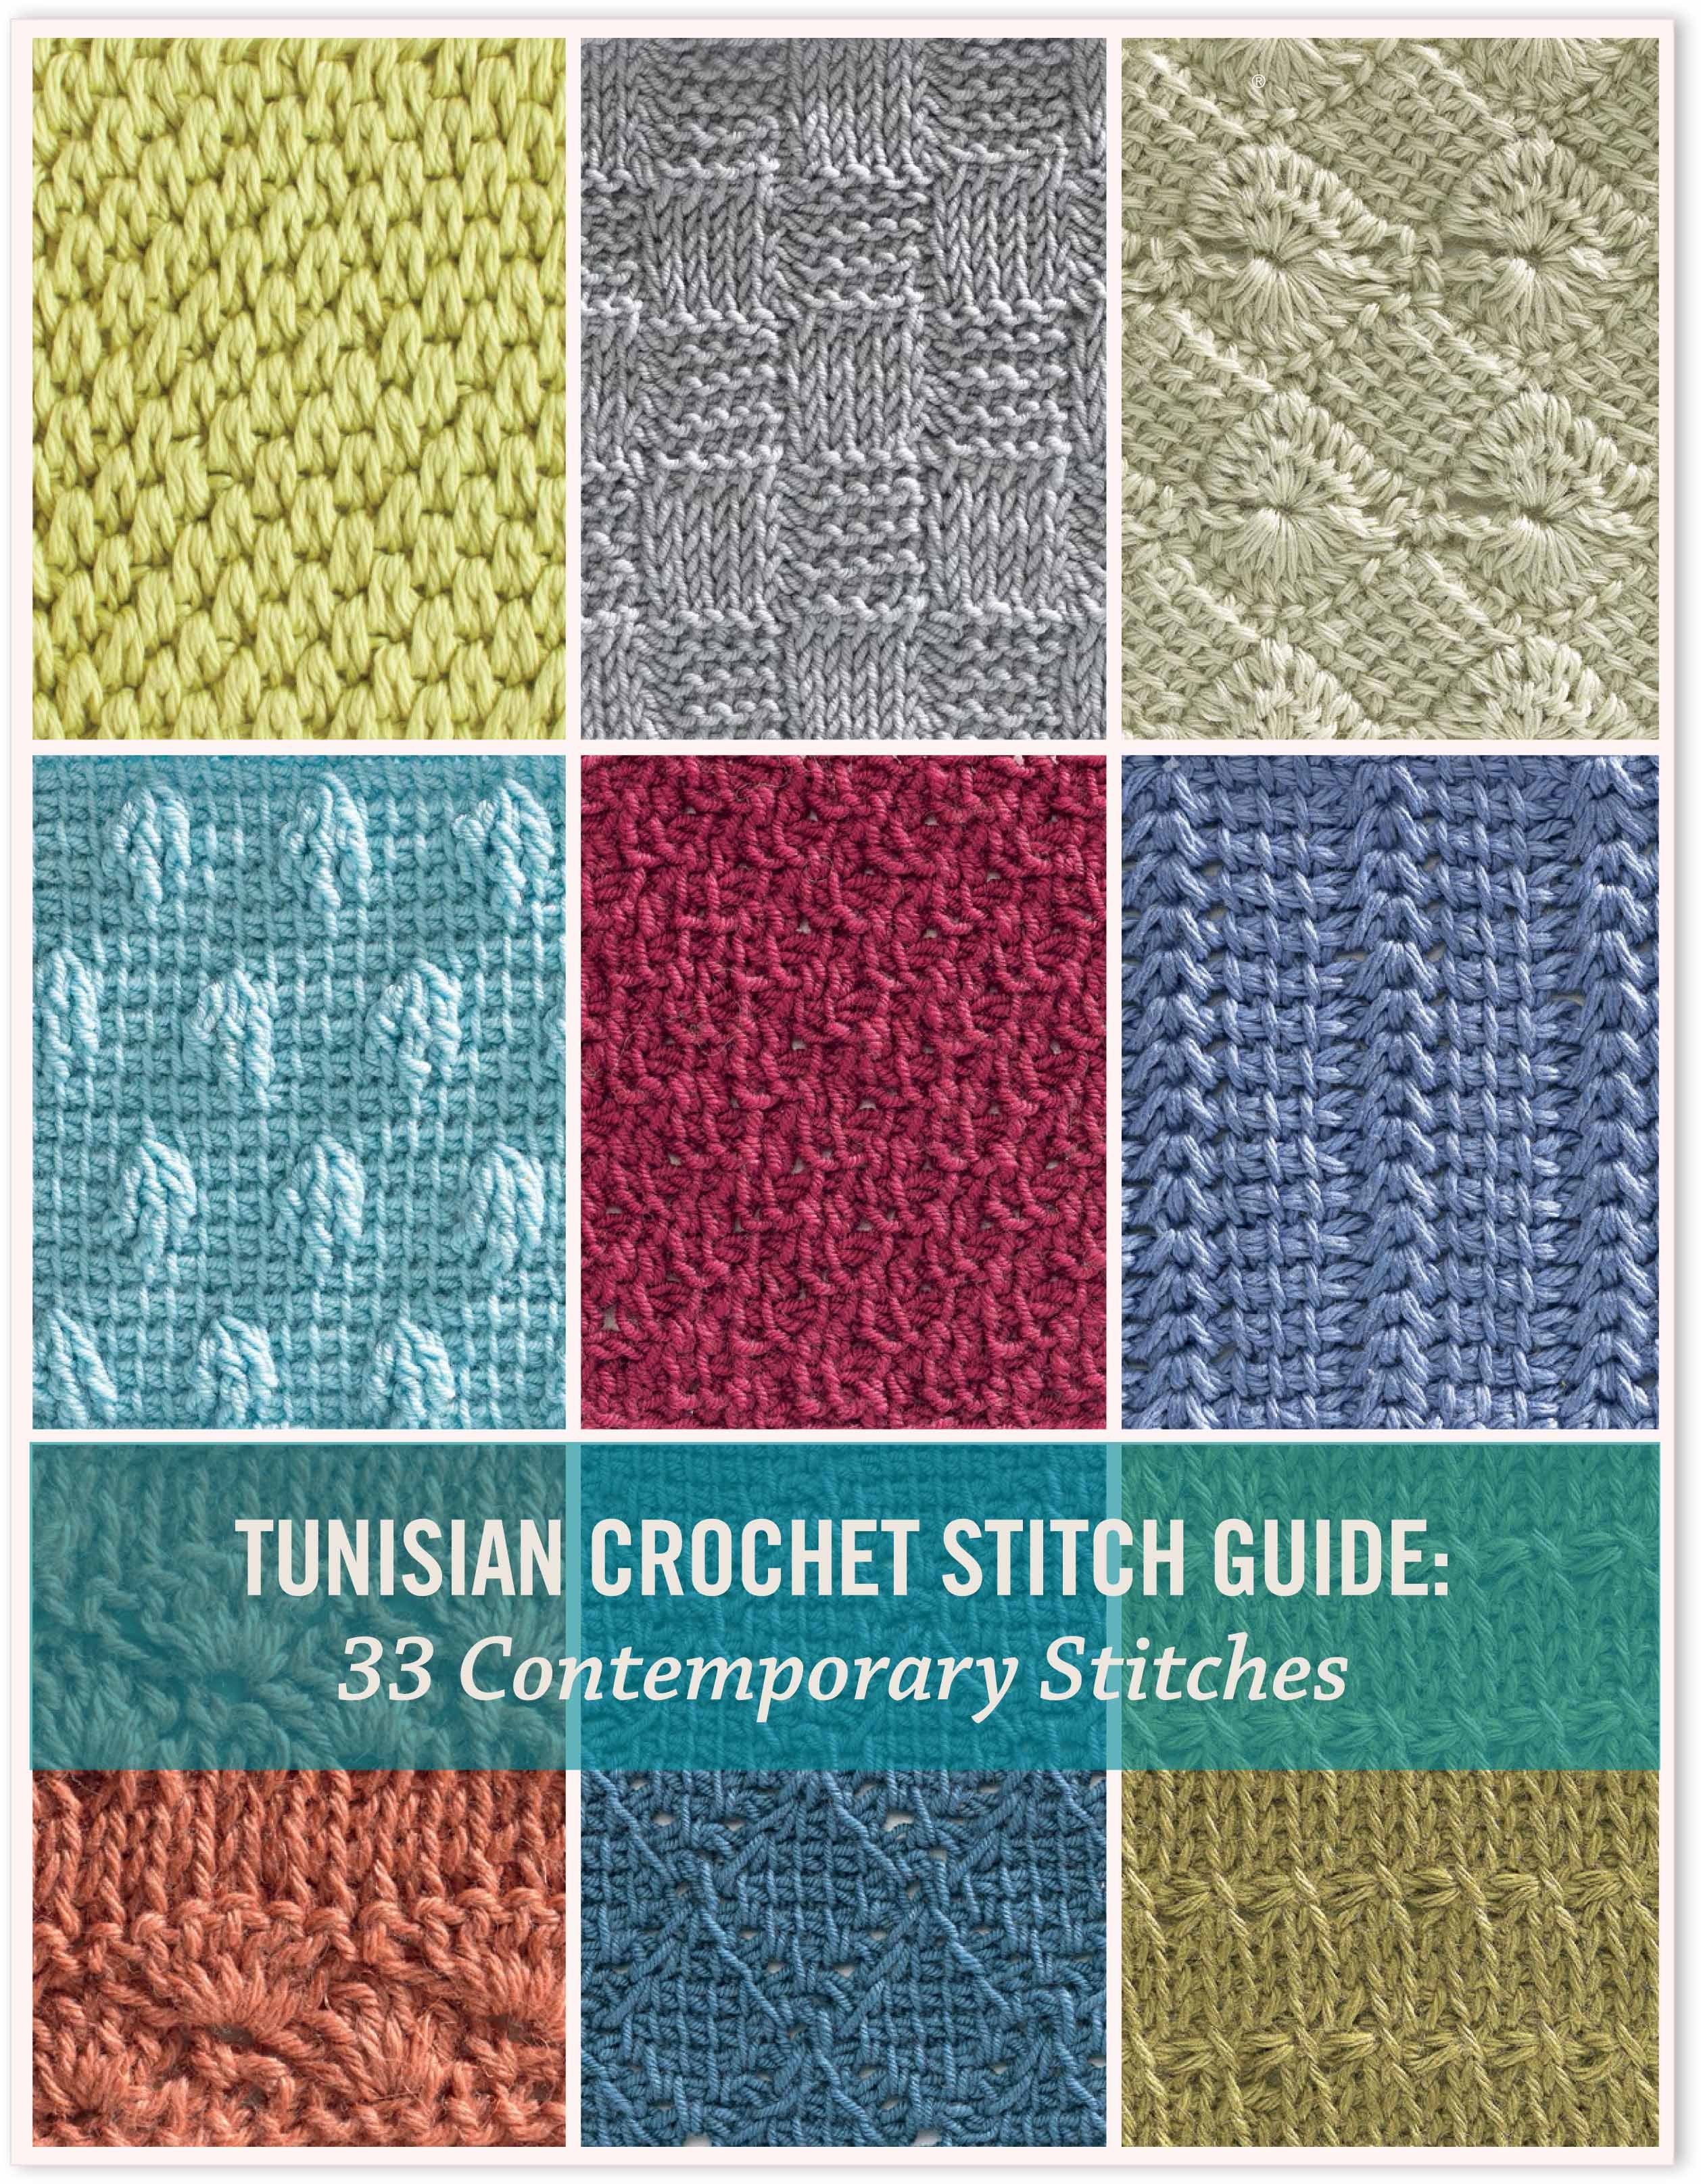 Tunisian Crochet patterns tunisian crochet stitch guide ebook: 33 contemporary stitches DMWYHFP